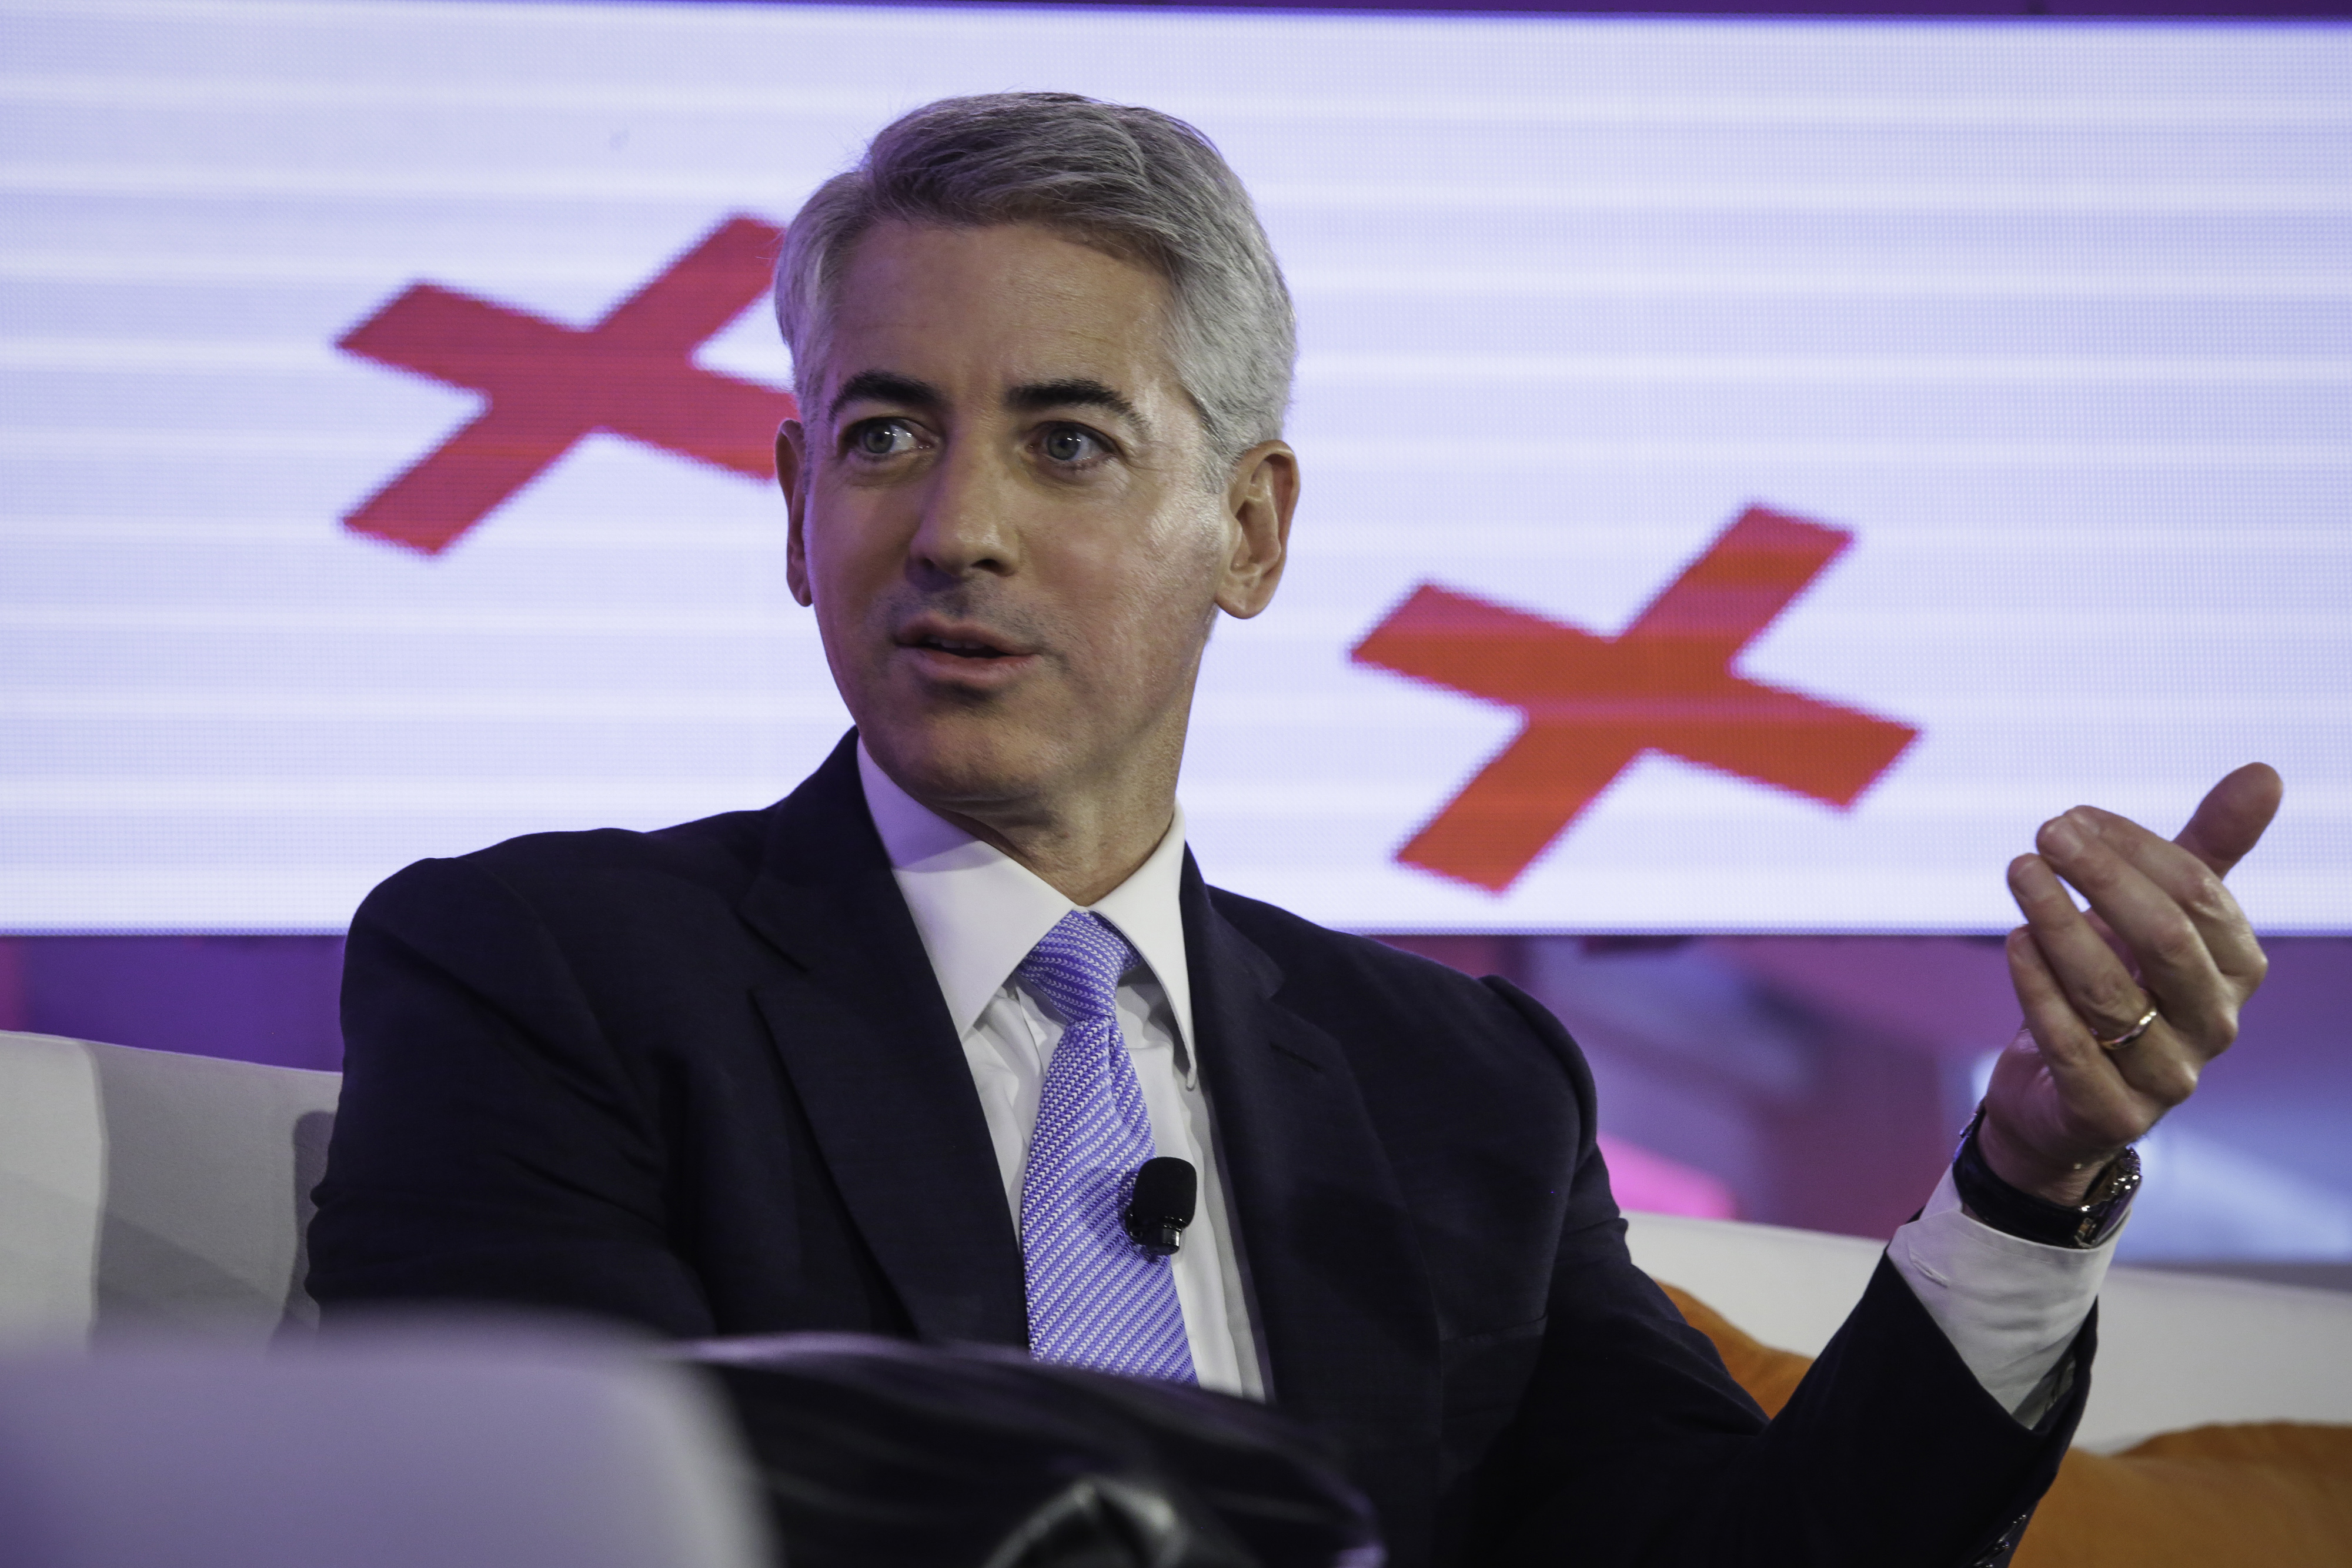 William  Bill  Ackman, founder and chief executive officer of Pershing Square Capital Management LP, speaks at the Bloomberg Markets Most Influential Summit 2015 in New York, U.S., on Tuesday, Oct. 6, 2015.